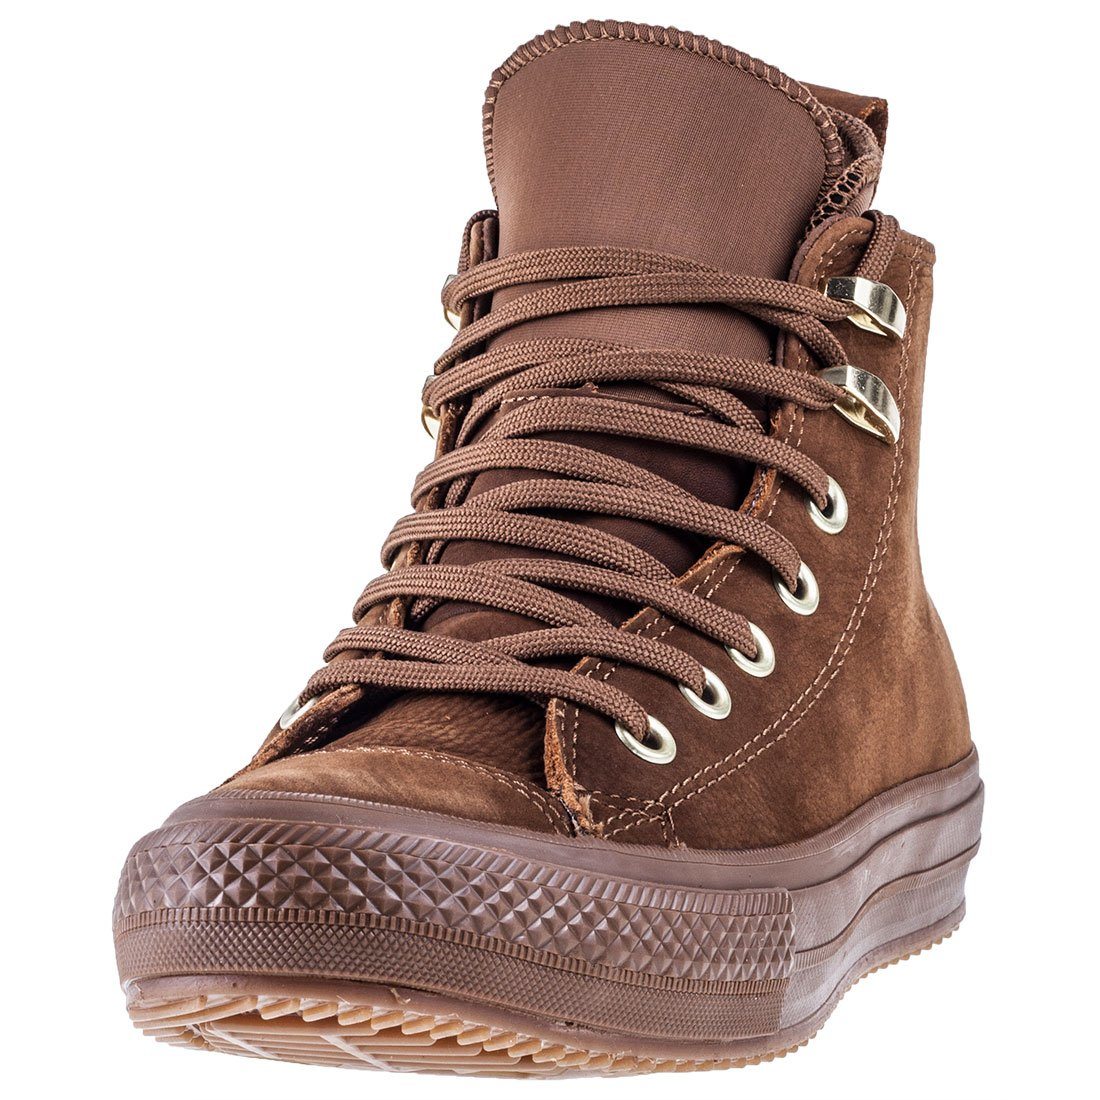 Converse CTAS Waterproof Boot Hi Womens Ankle Boots Brown - 7 UK